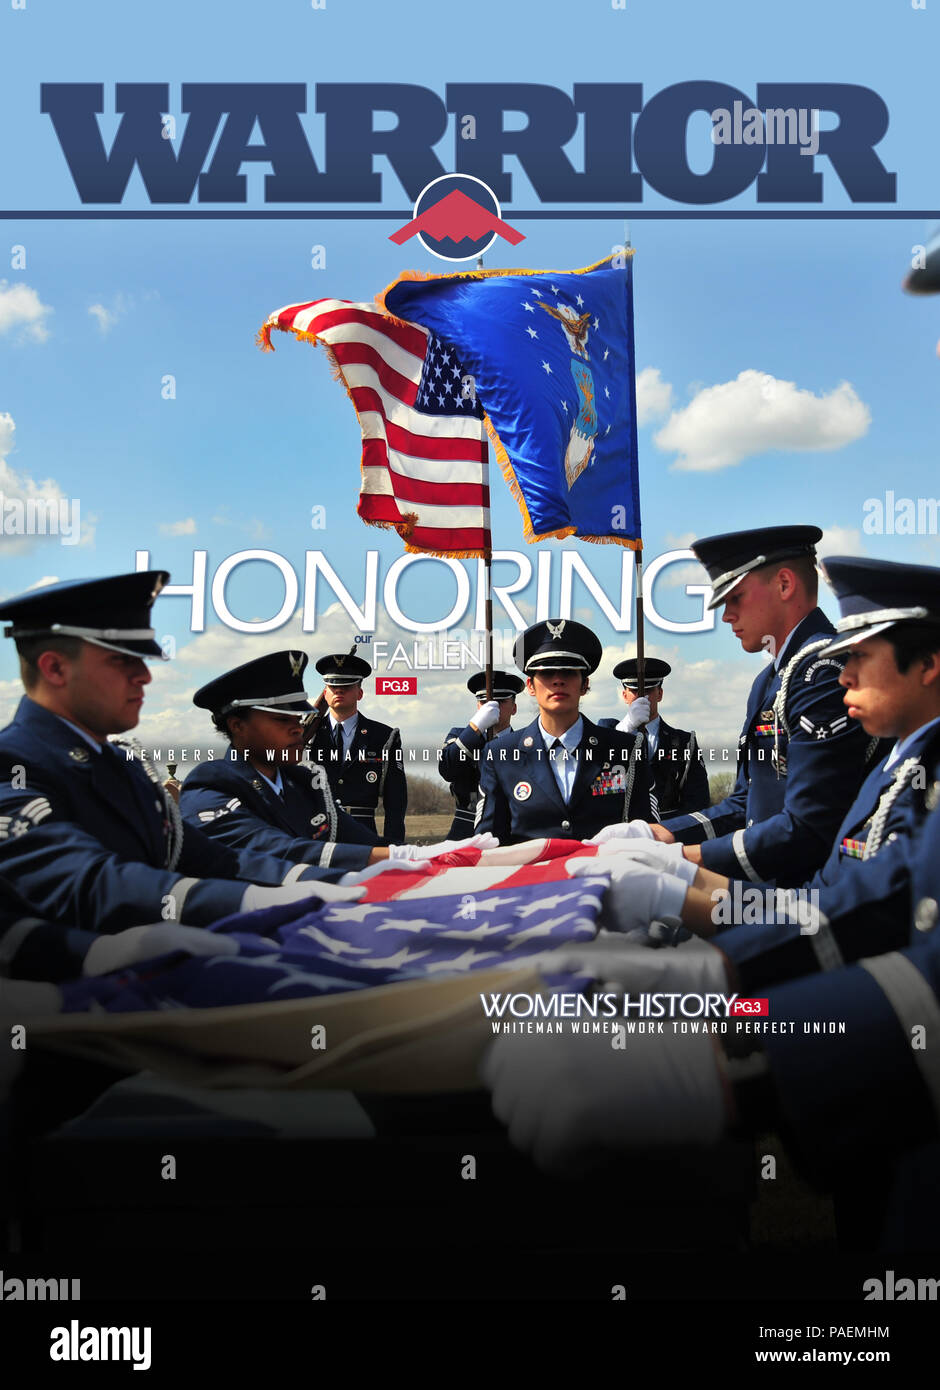 March 25, 2016 cover of the Whiteman Warrior depicting members of the Whiteman Honor Guard practicing funeral ceremonies. ( U.S. Air Force graphic by Senior Airman Jovan Banks) - Stock Image